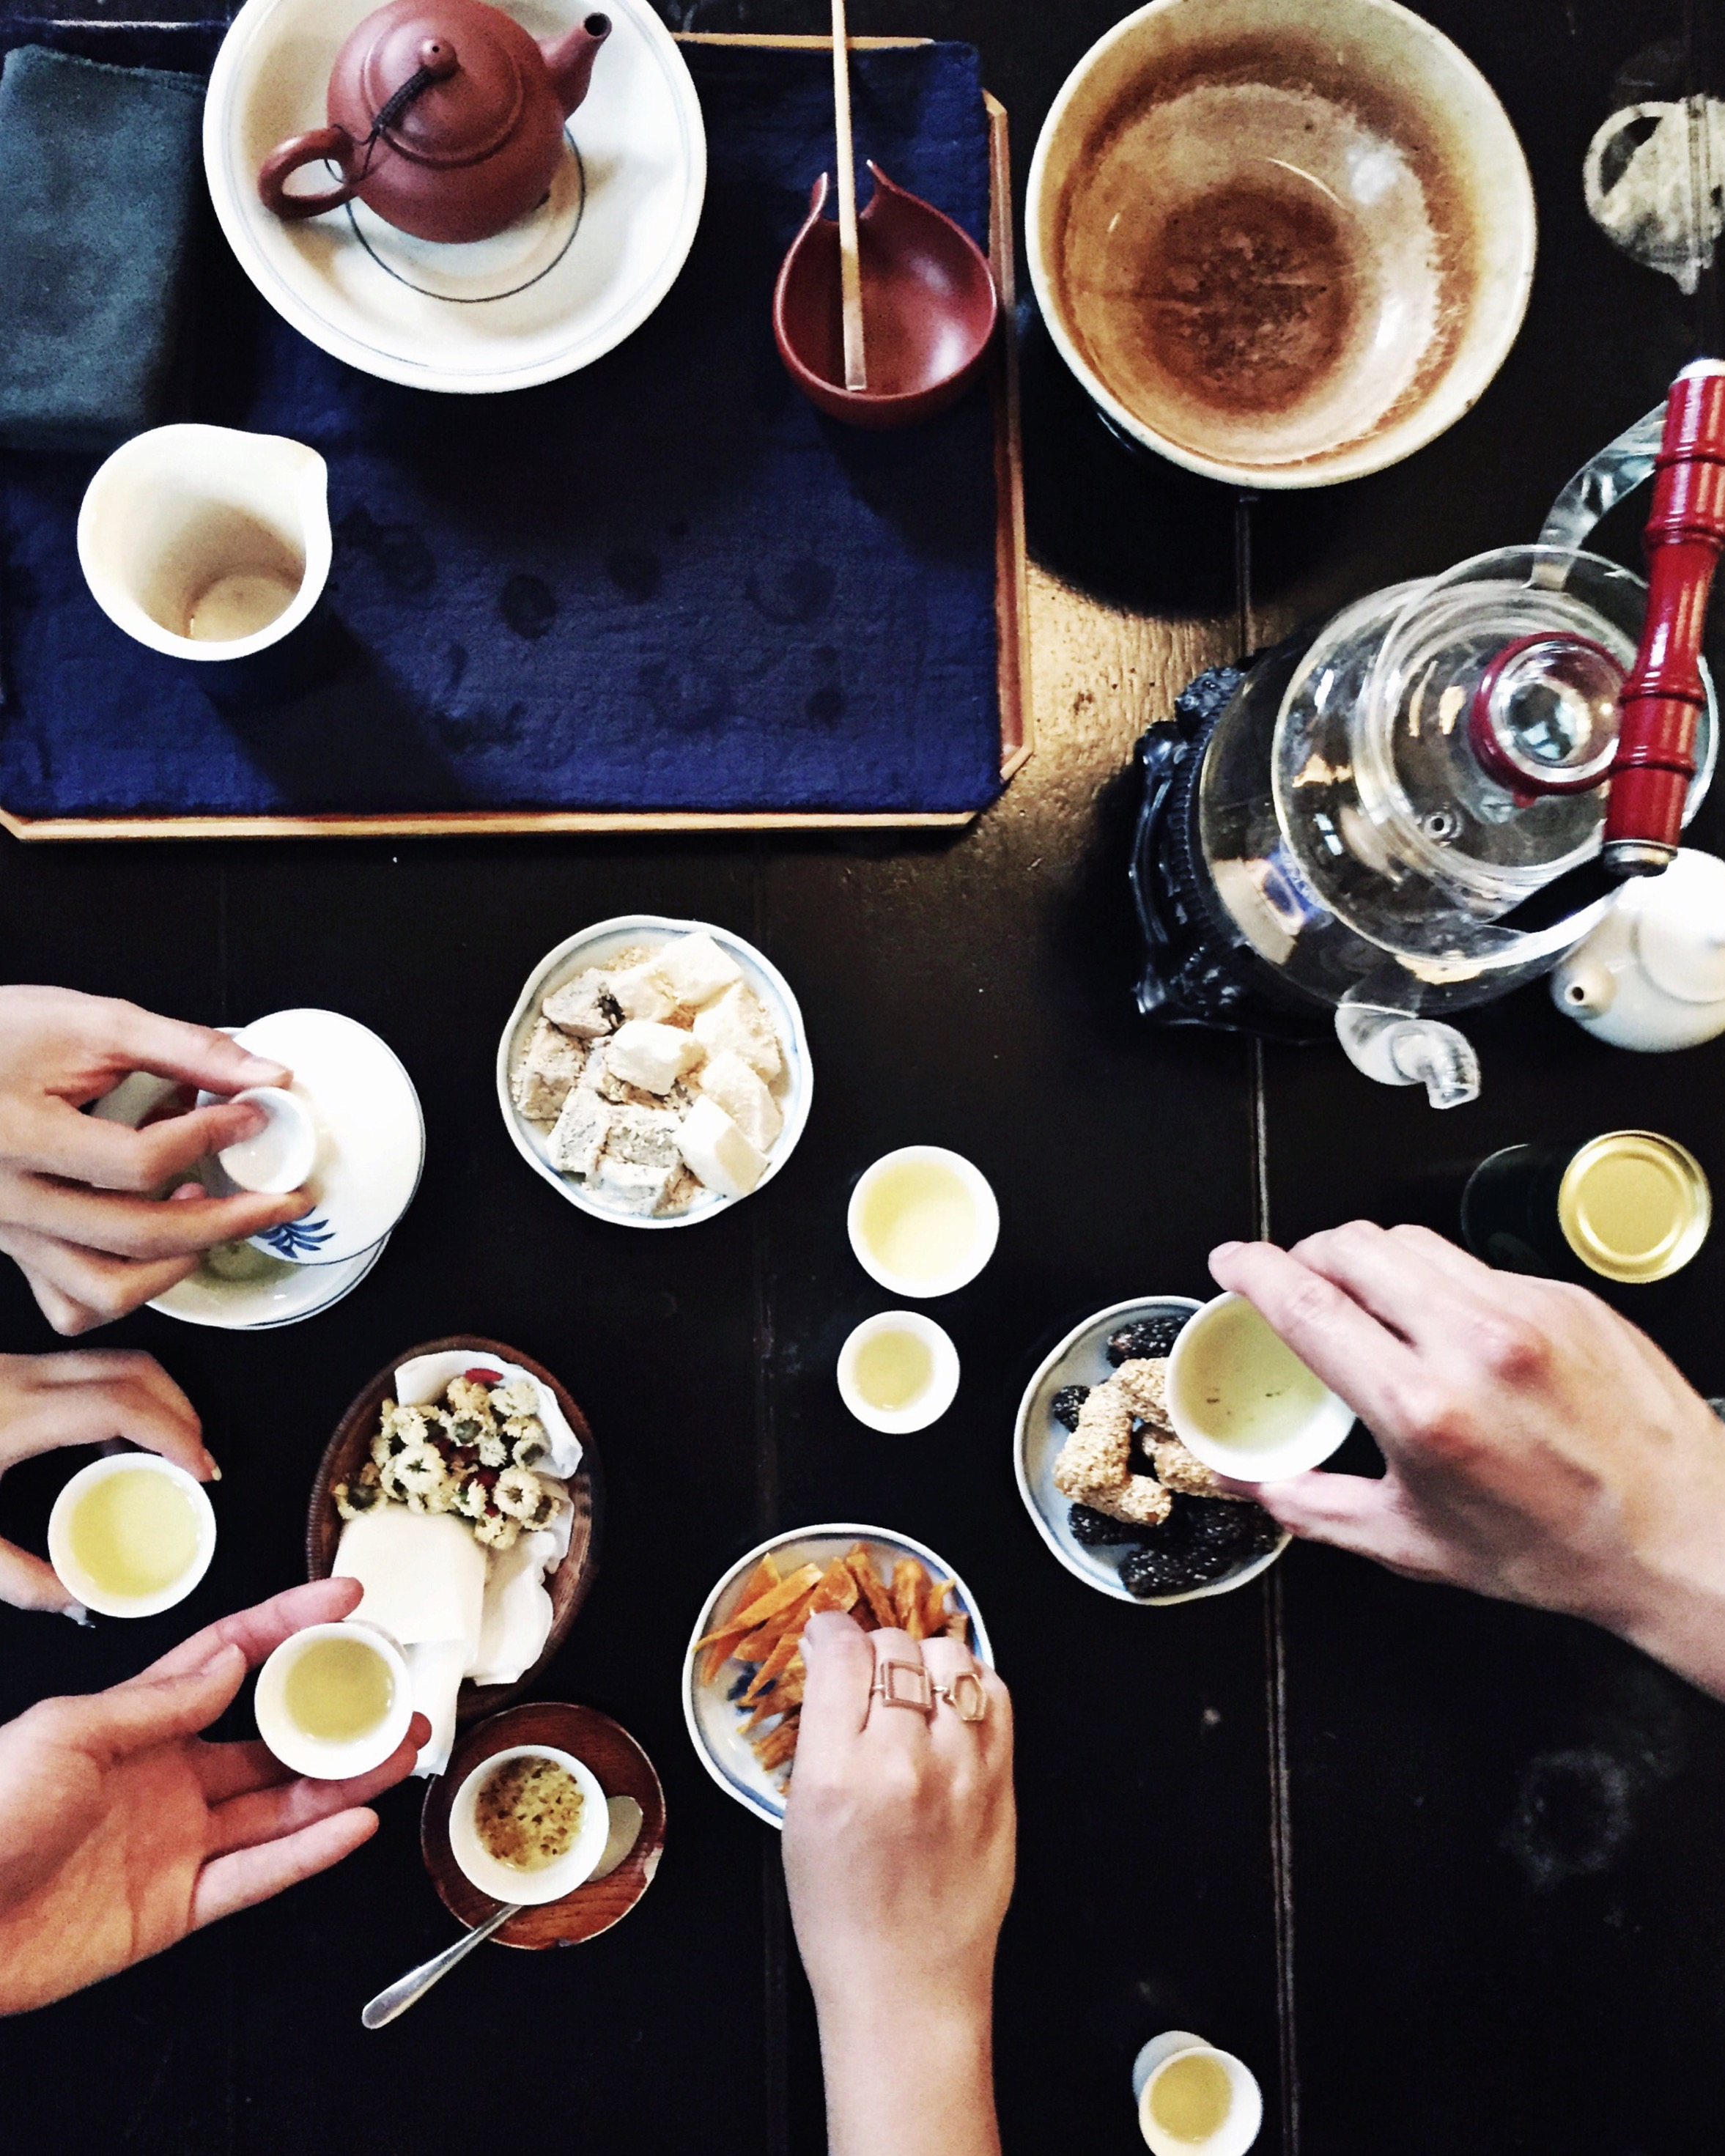 Photo by my dear friend Shantel Liao. Taken during our afternoon tea time at Wistaria Tea House in Taipei, Taiwan.